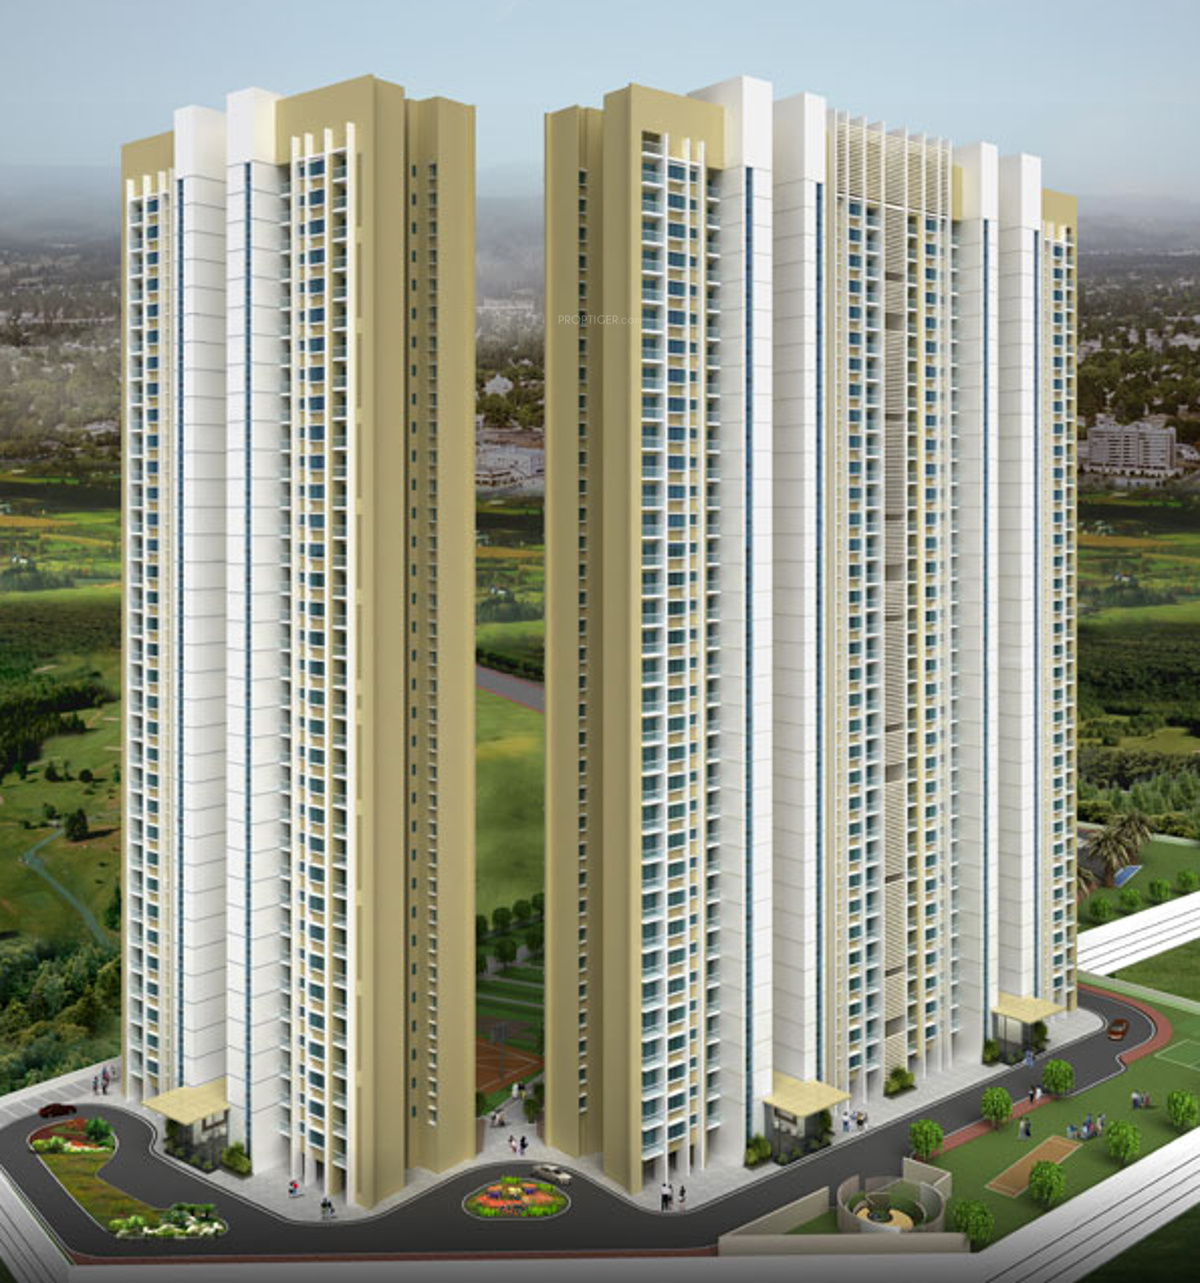 Lodha Group Aurum Grande 500695 on 24 x house floor plans